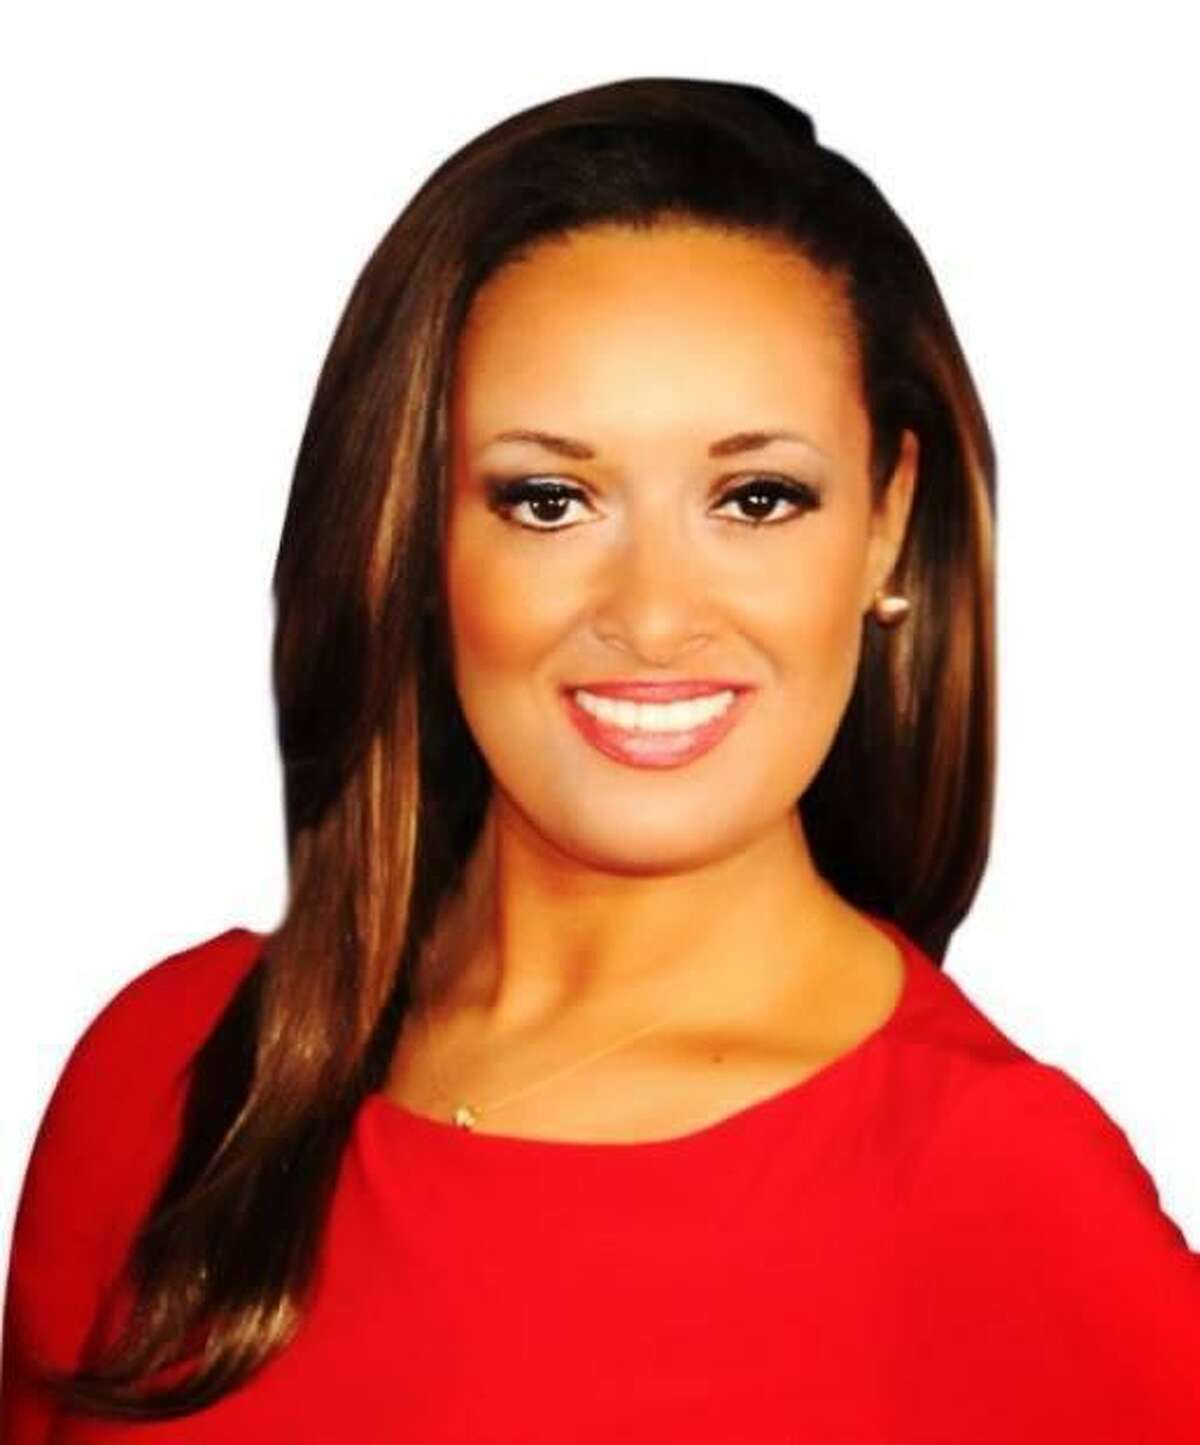 Longtime local anchorwoman Karen Grace, a San Antonio native and Taft High graduate, joined KENS in 2005.